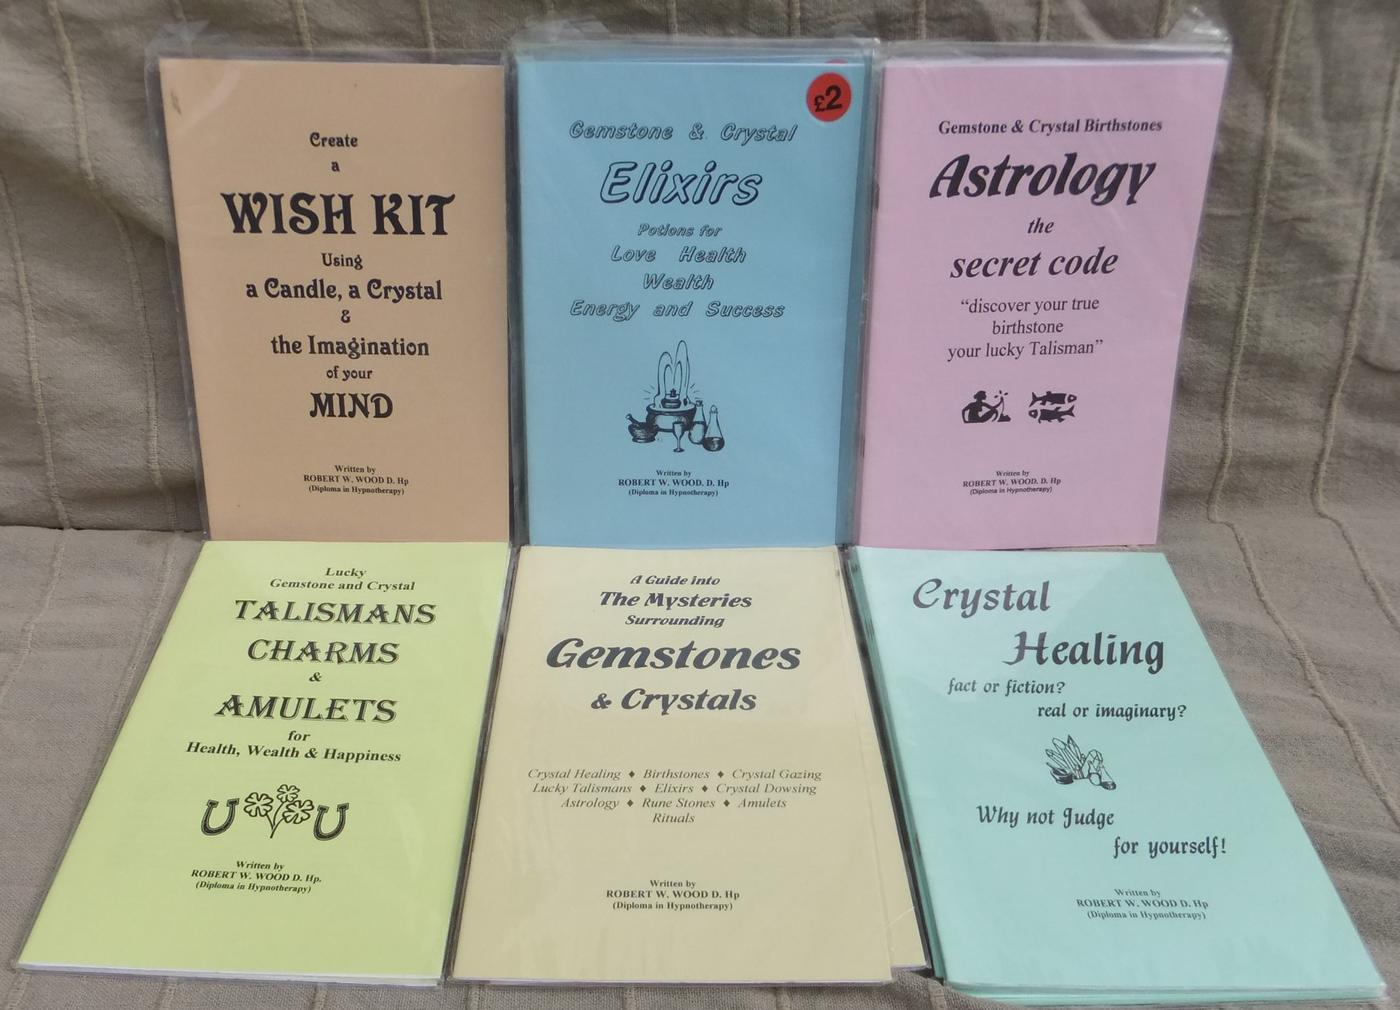 Gemstone and Crystal Booklets by Robert W. Wood